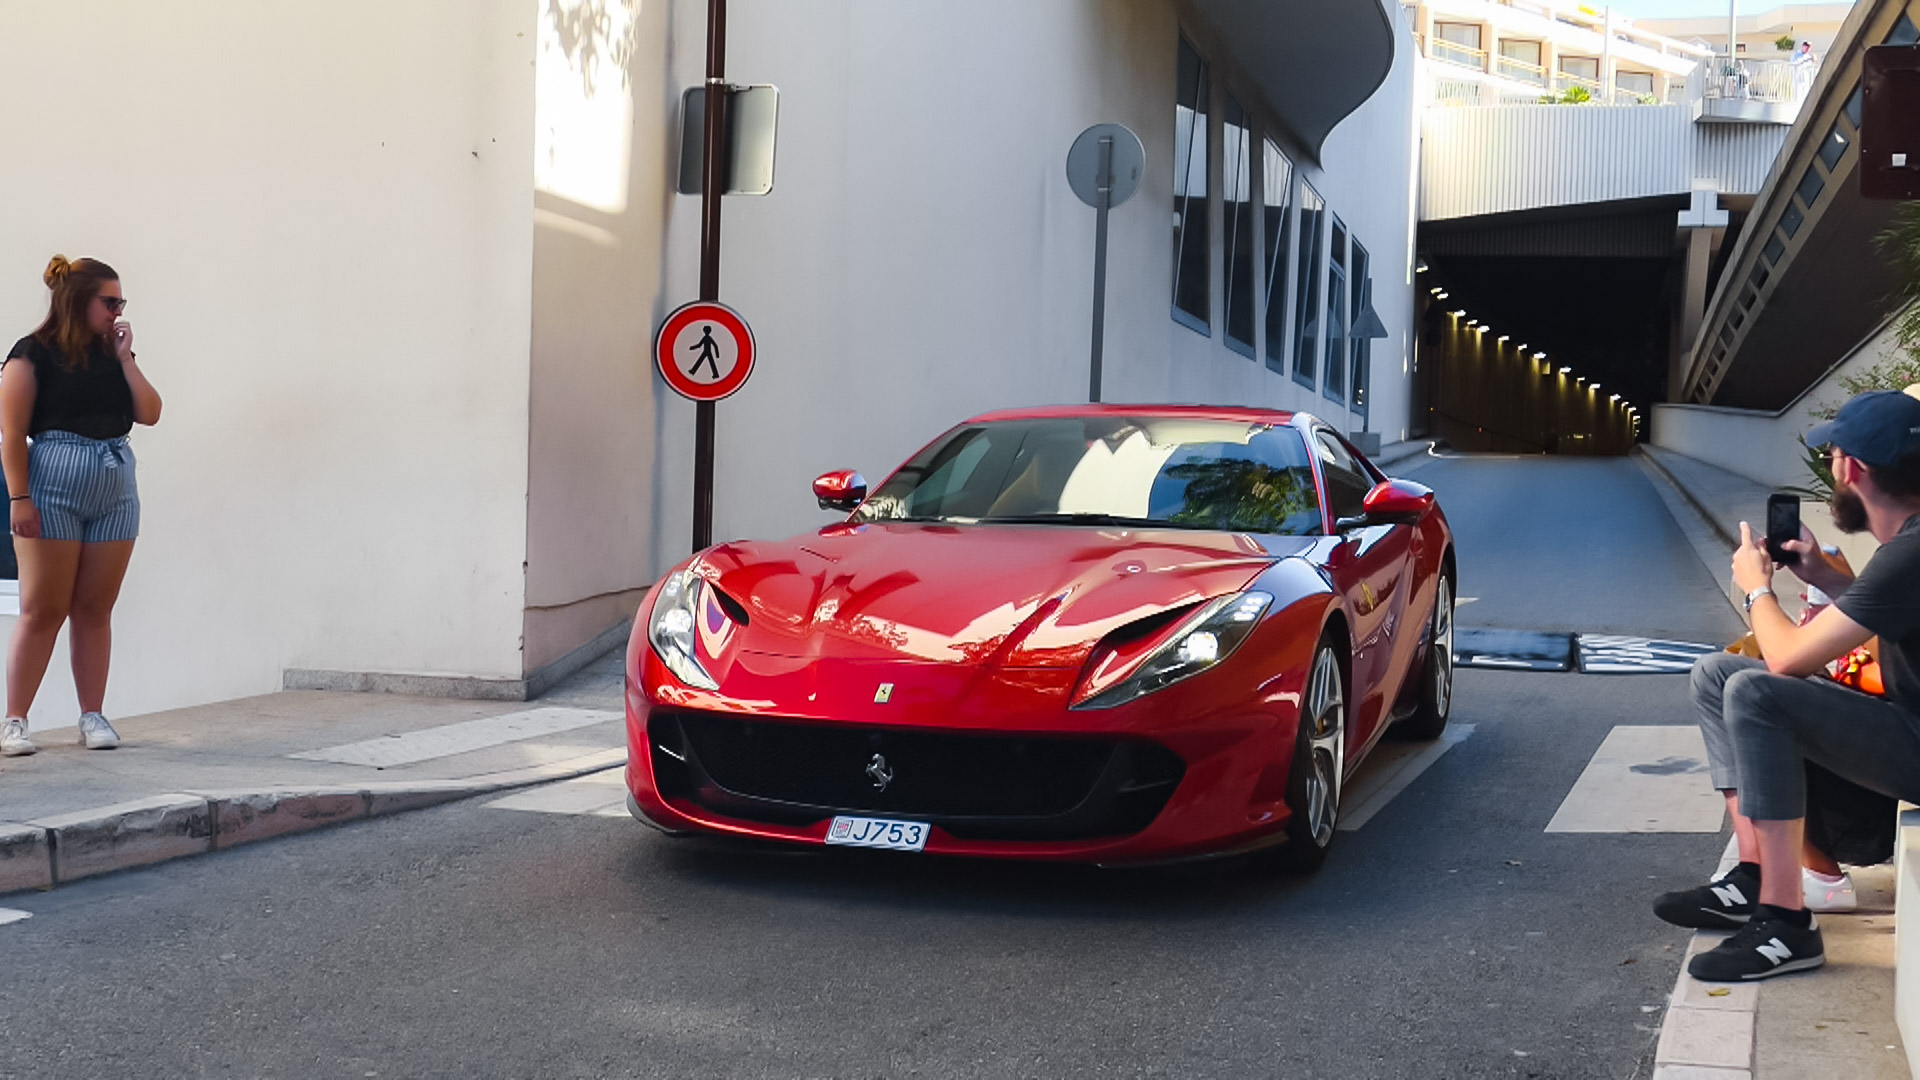 Ferrari 812 Superfast - J753 (MC)